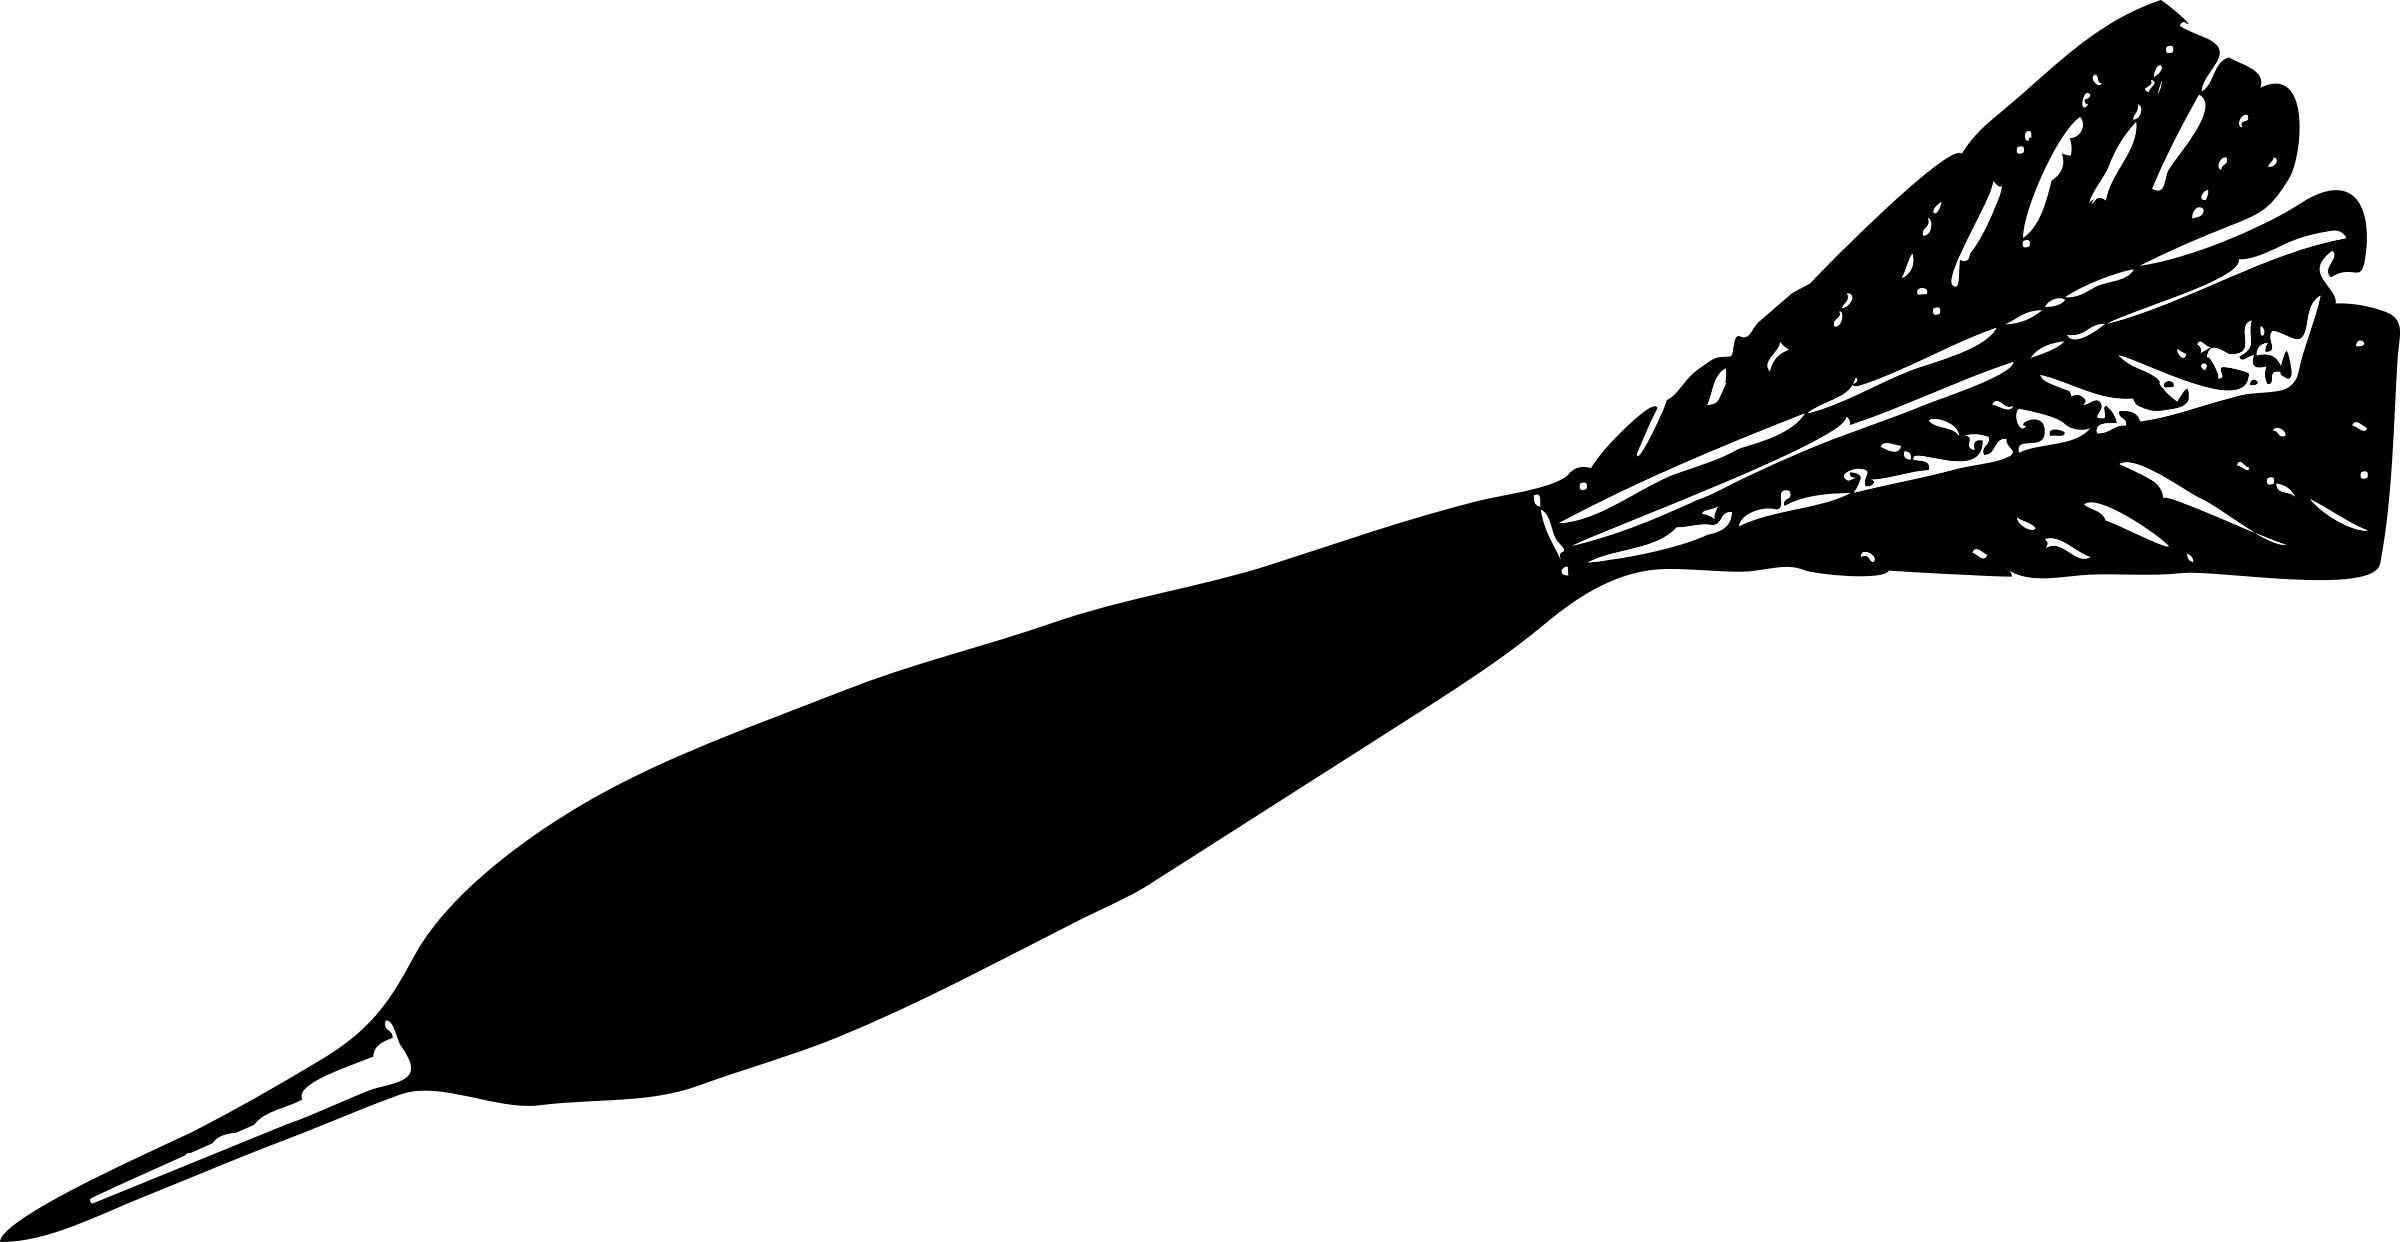 Dart drawing black and white. Clipart big image png